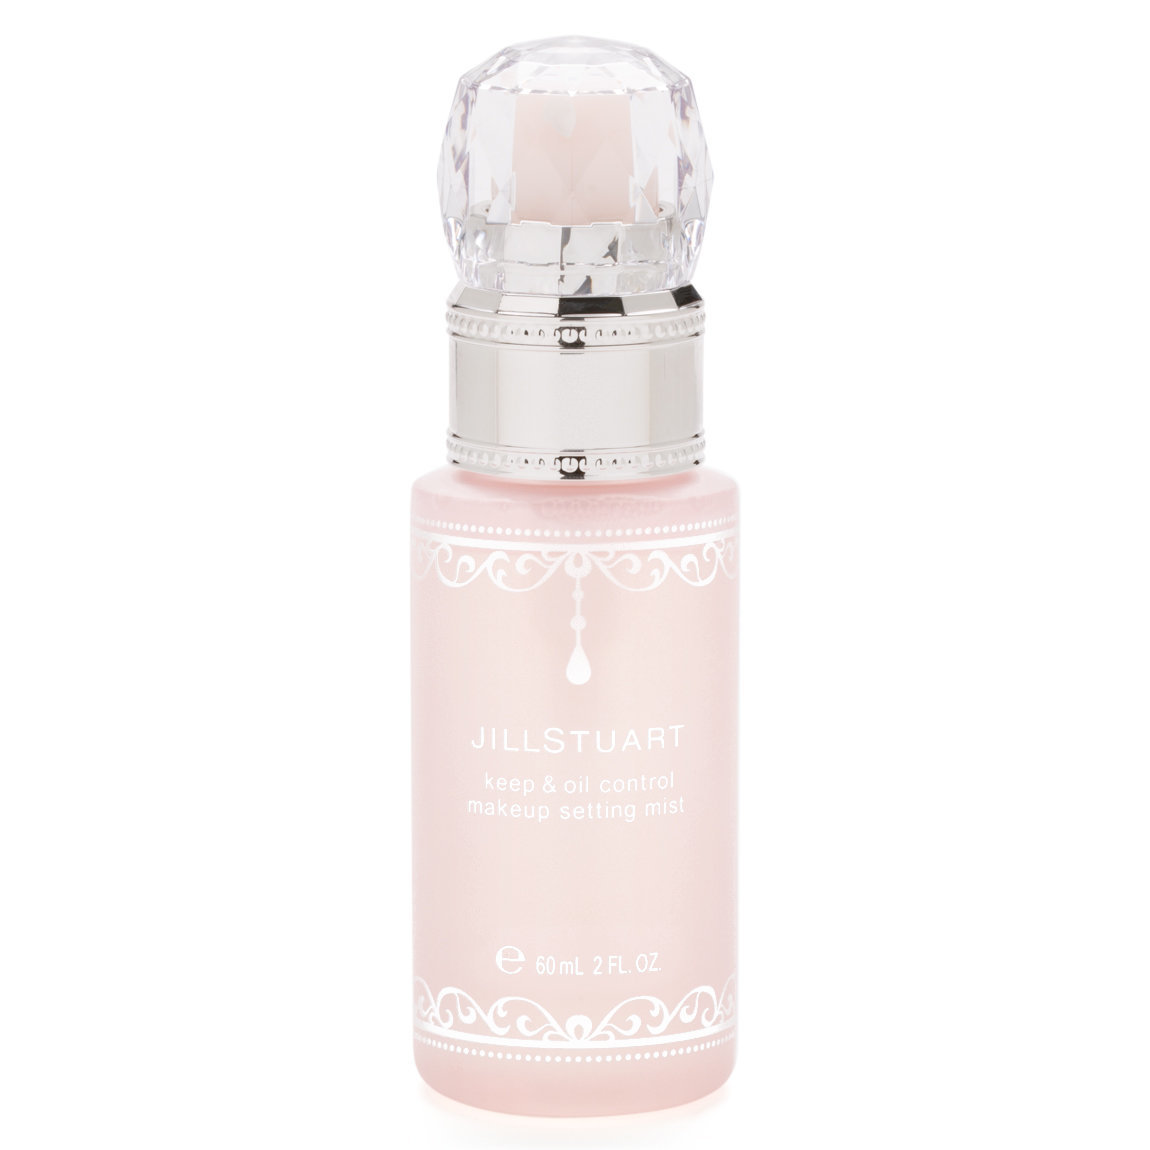 JILL STUART Beauty Keep & Oil Control Setting Mist alternative view 1 - product swatch.